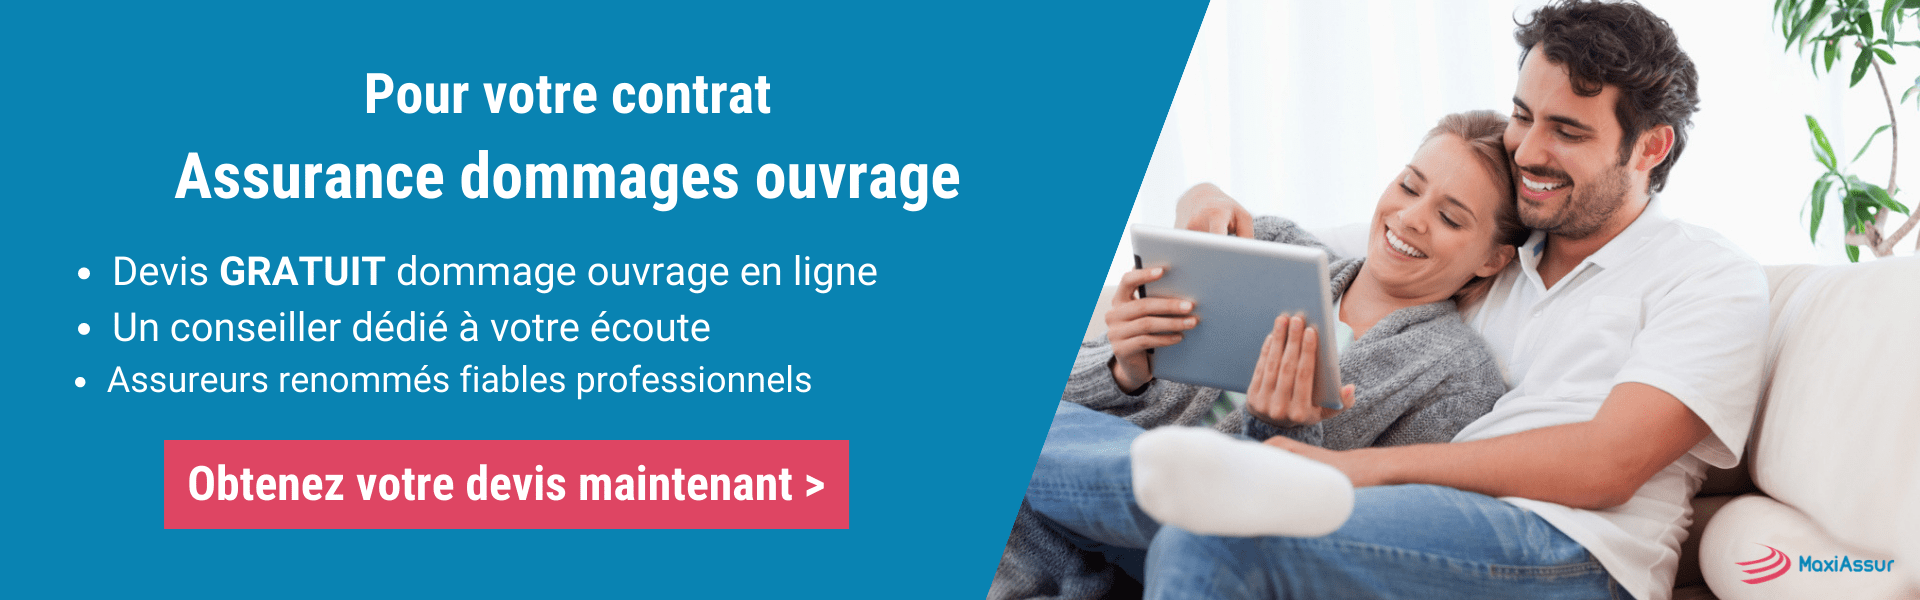 contrat assurance dommages ouvrage